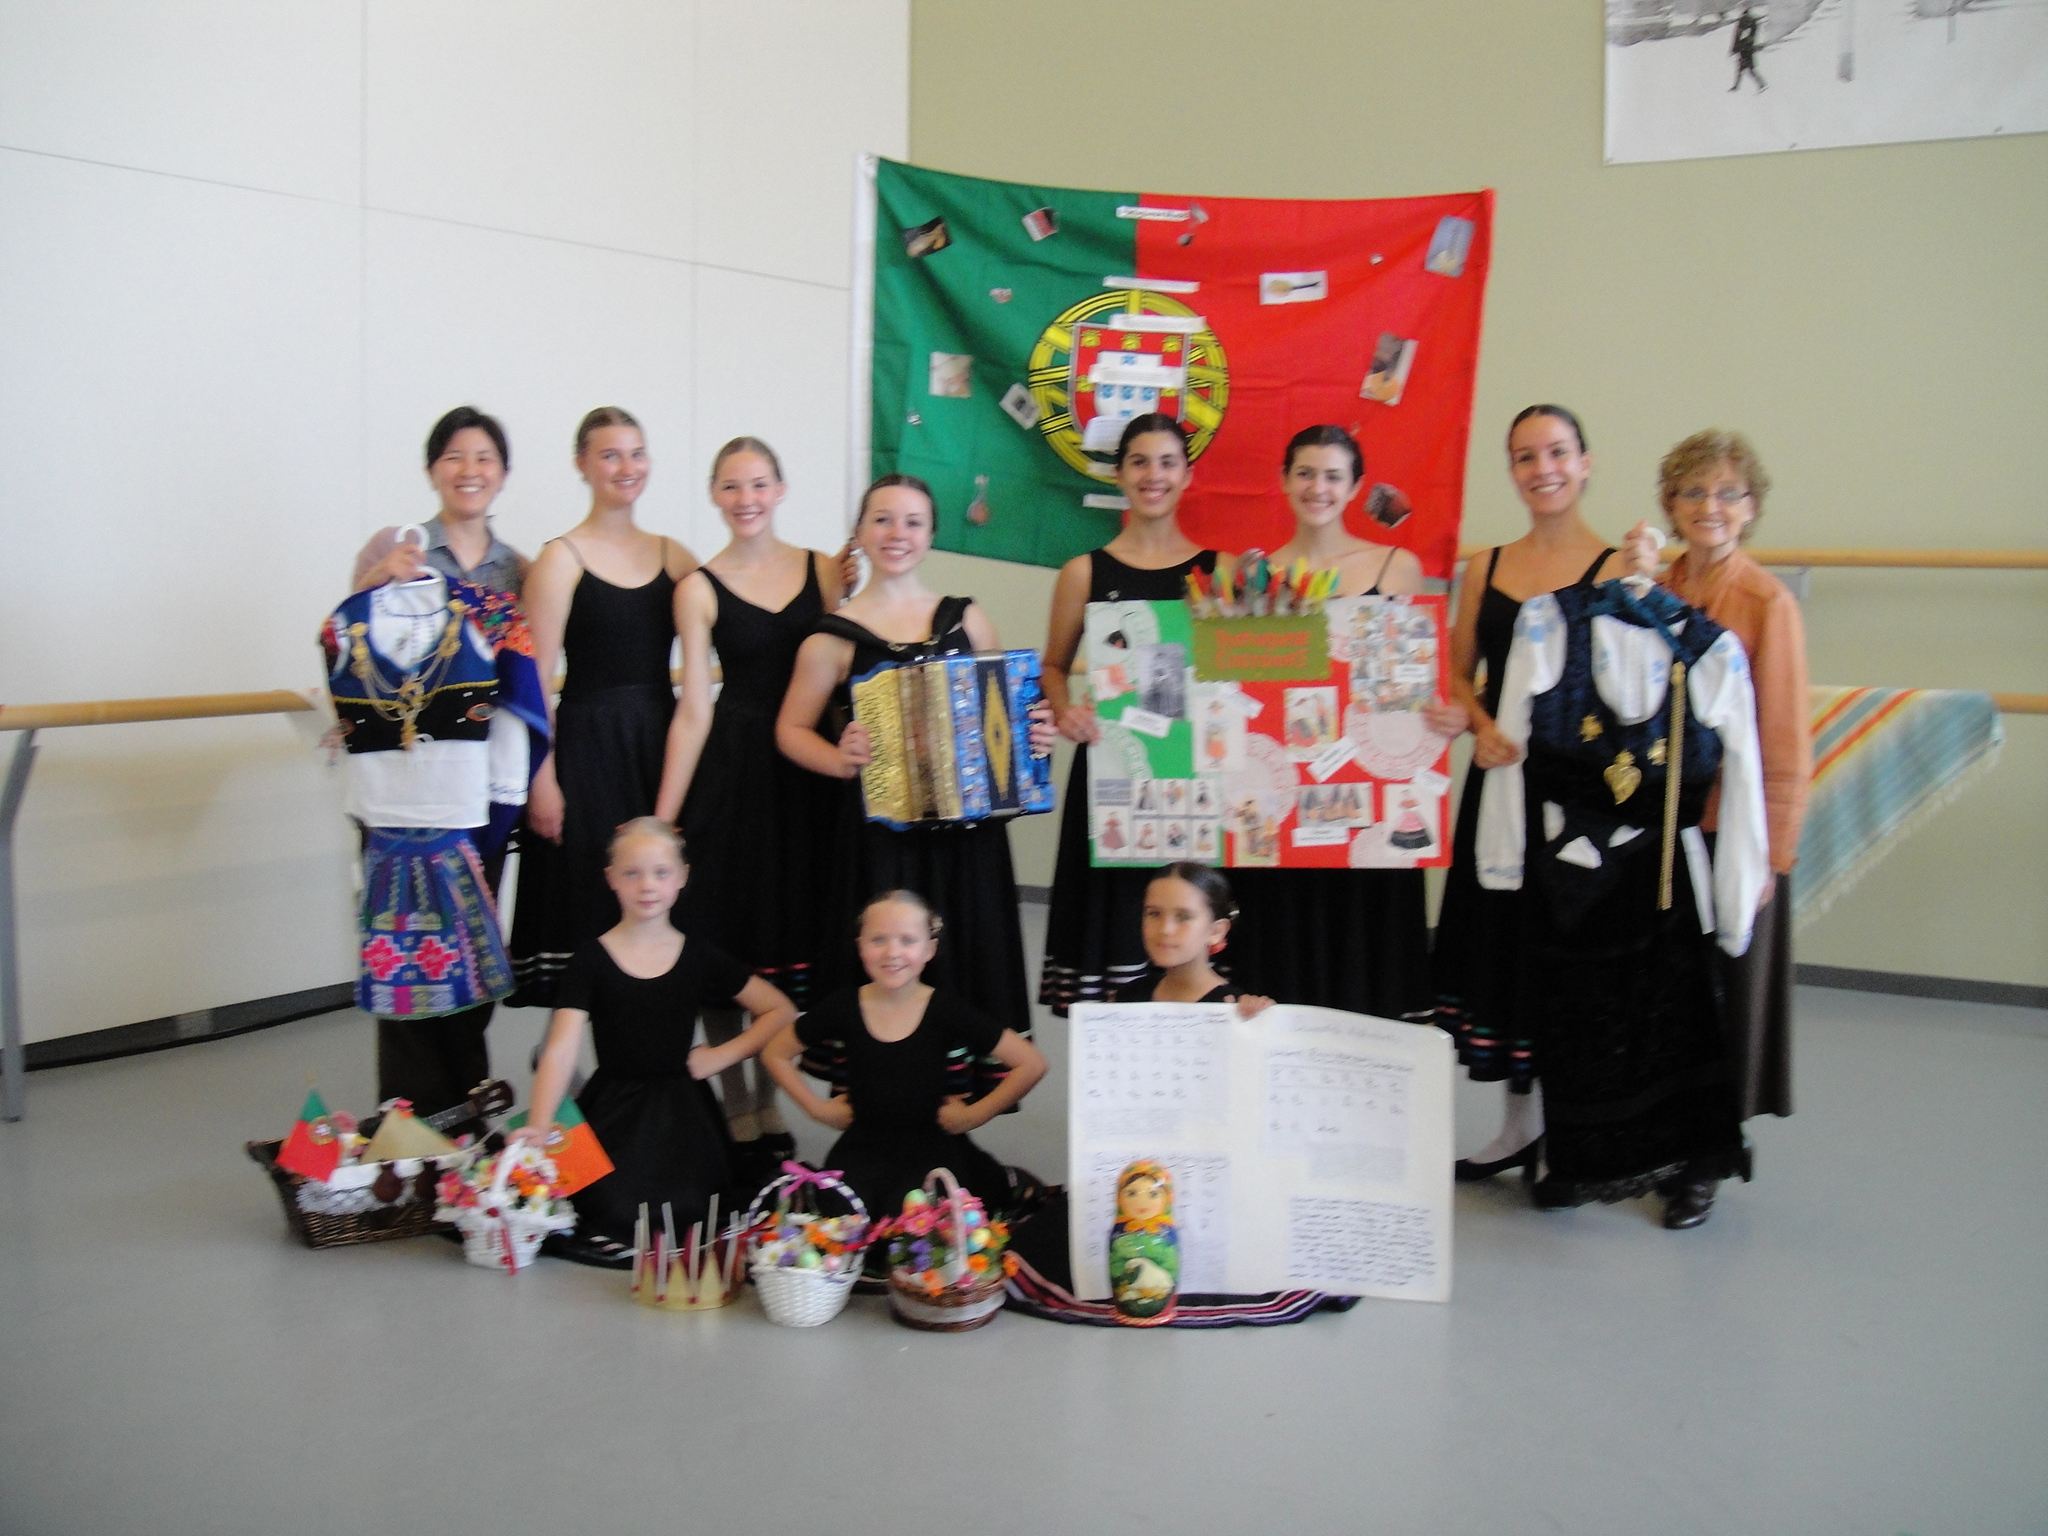 National Dance Exam students 2013